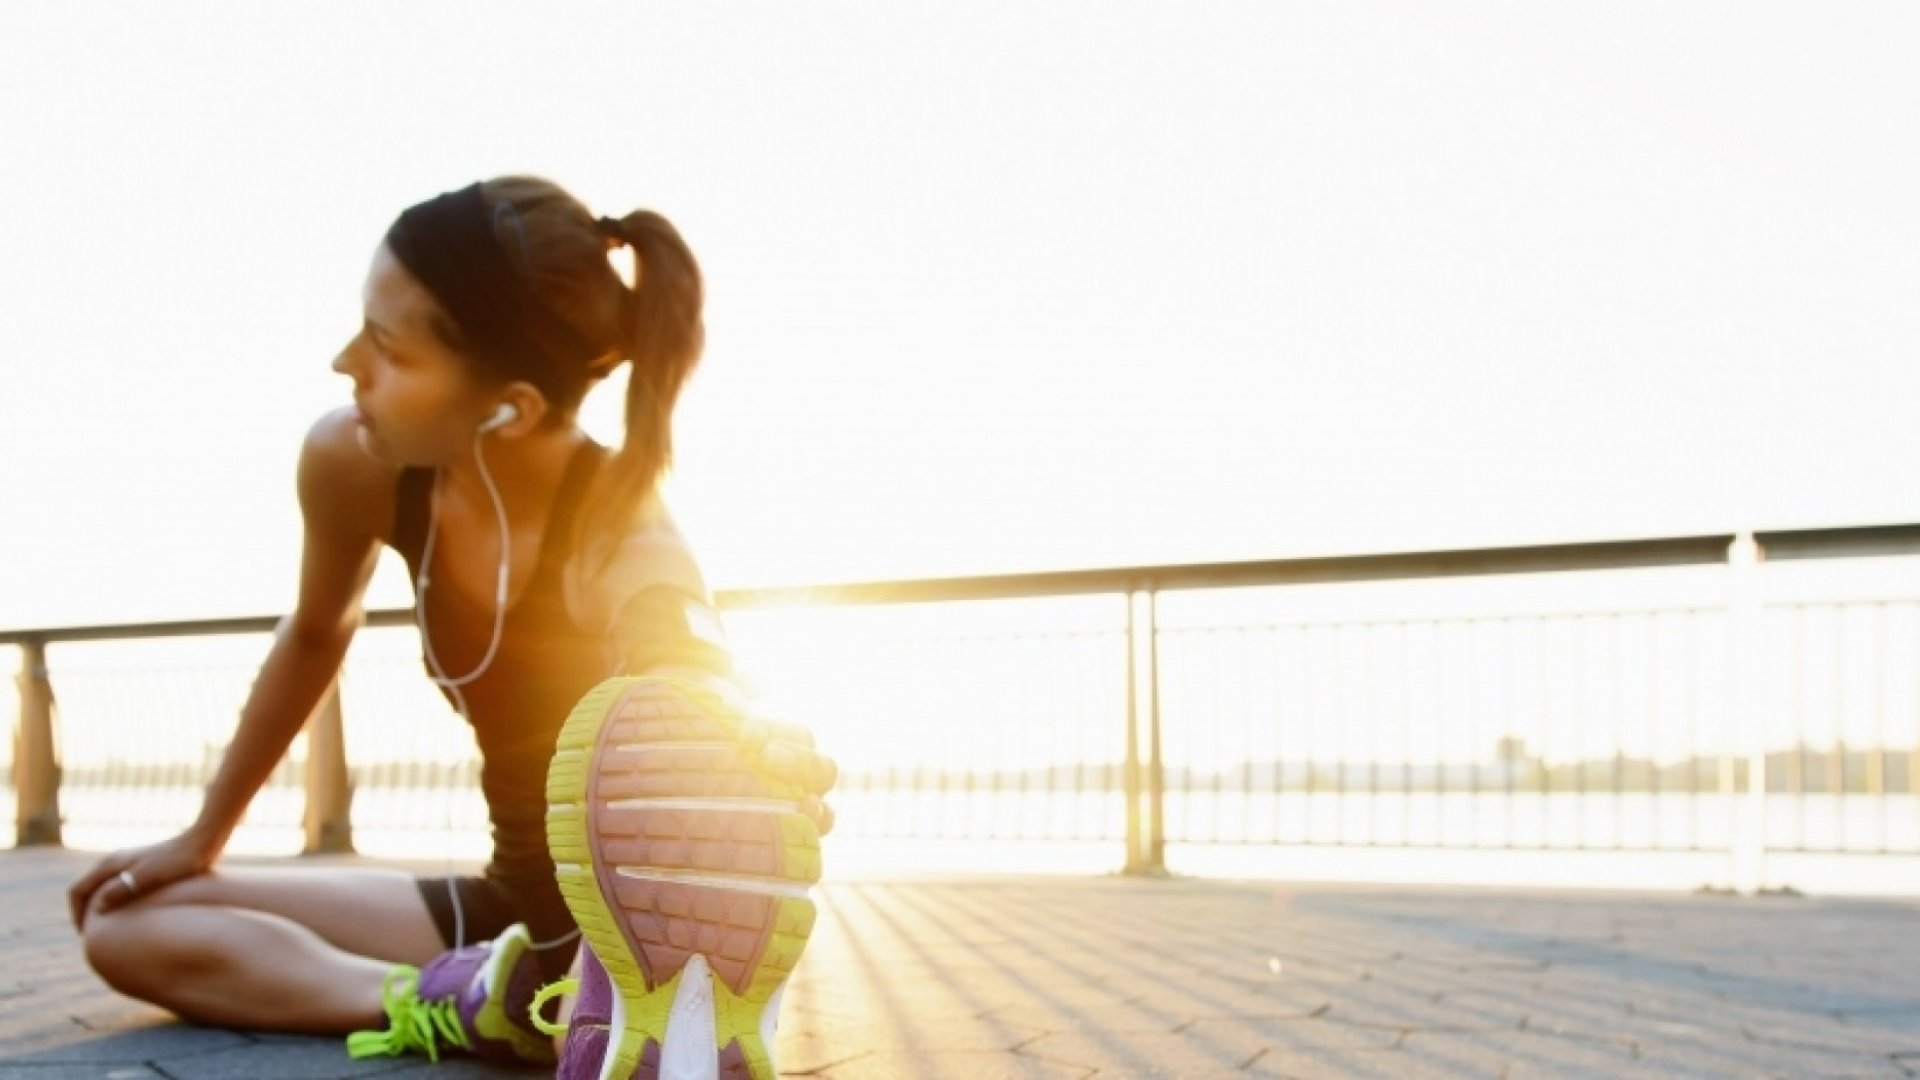 Organic Food, Supplements, Diet Fads: Why Now Is a Great Time to Be a Fitness Startup